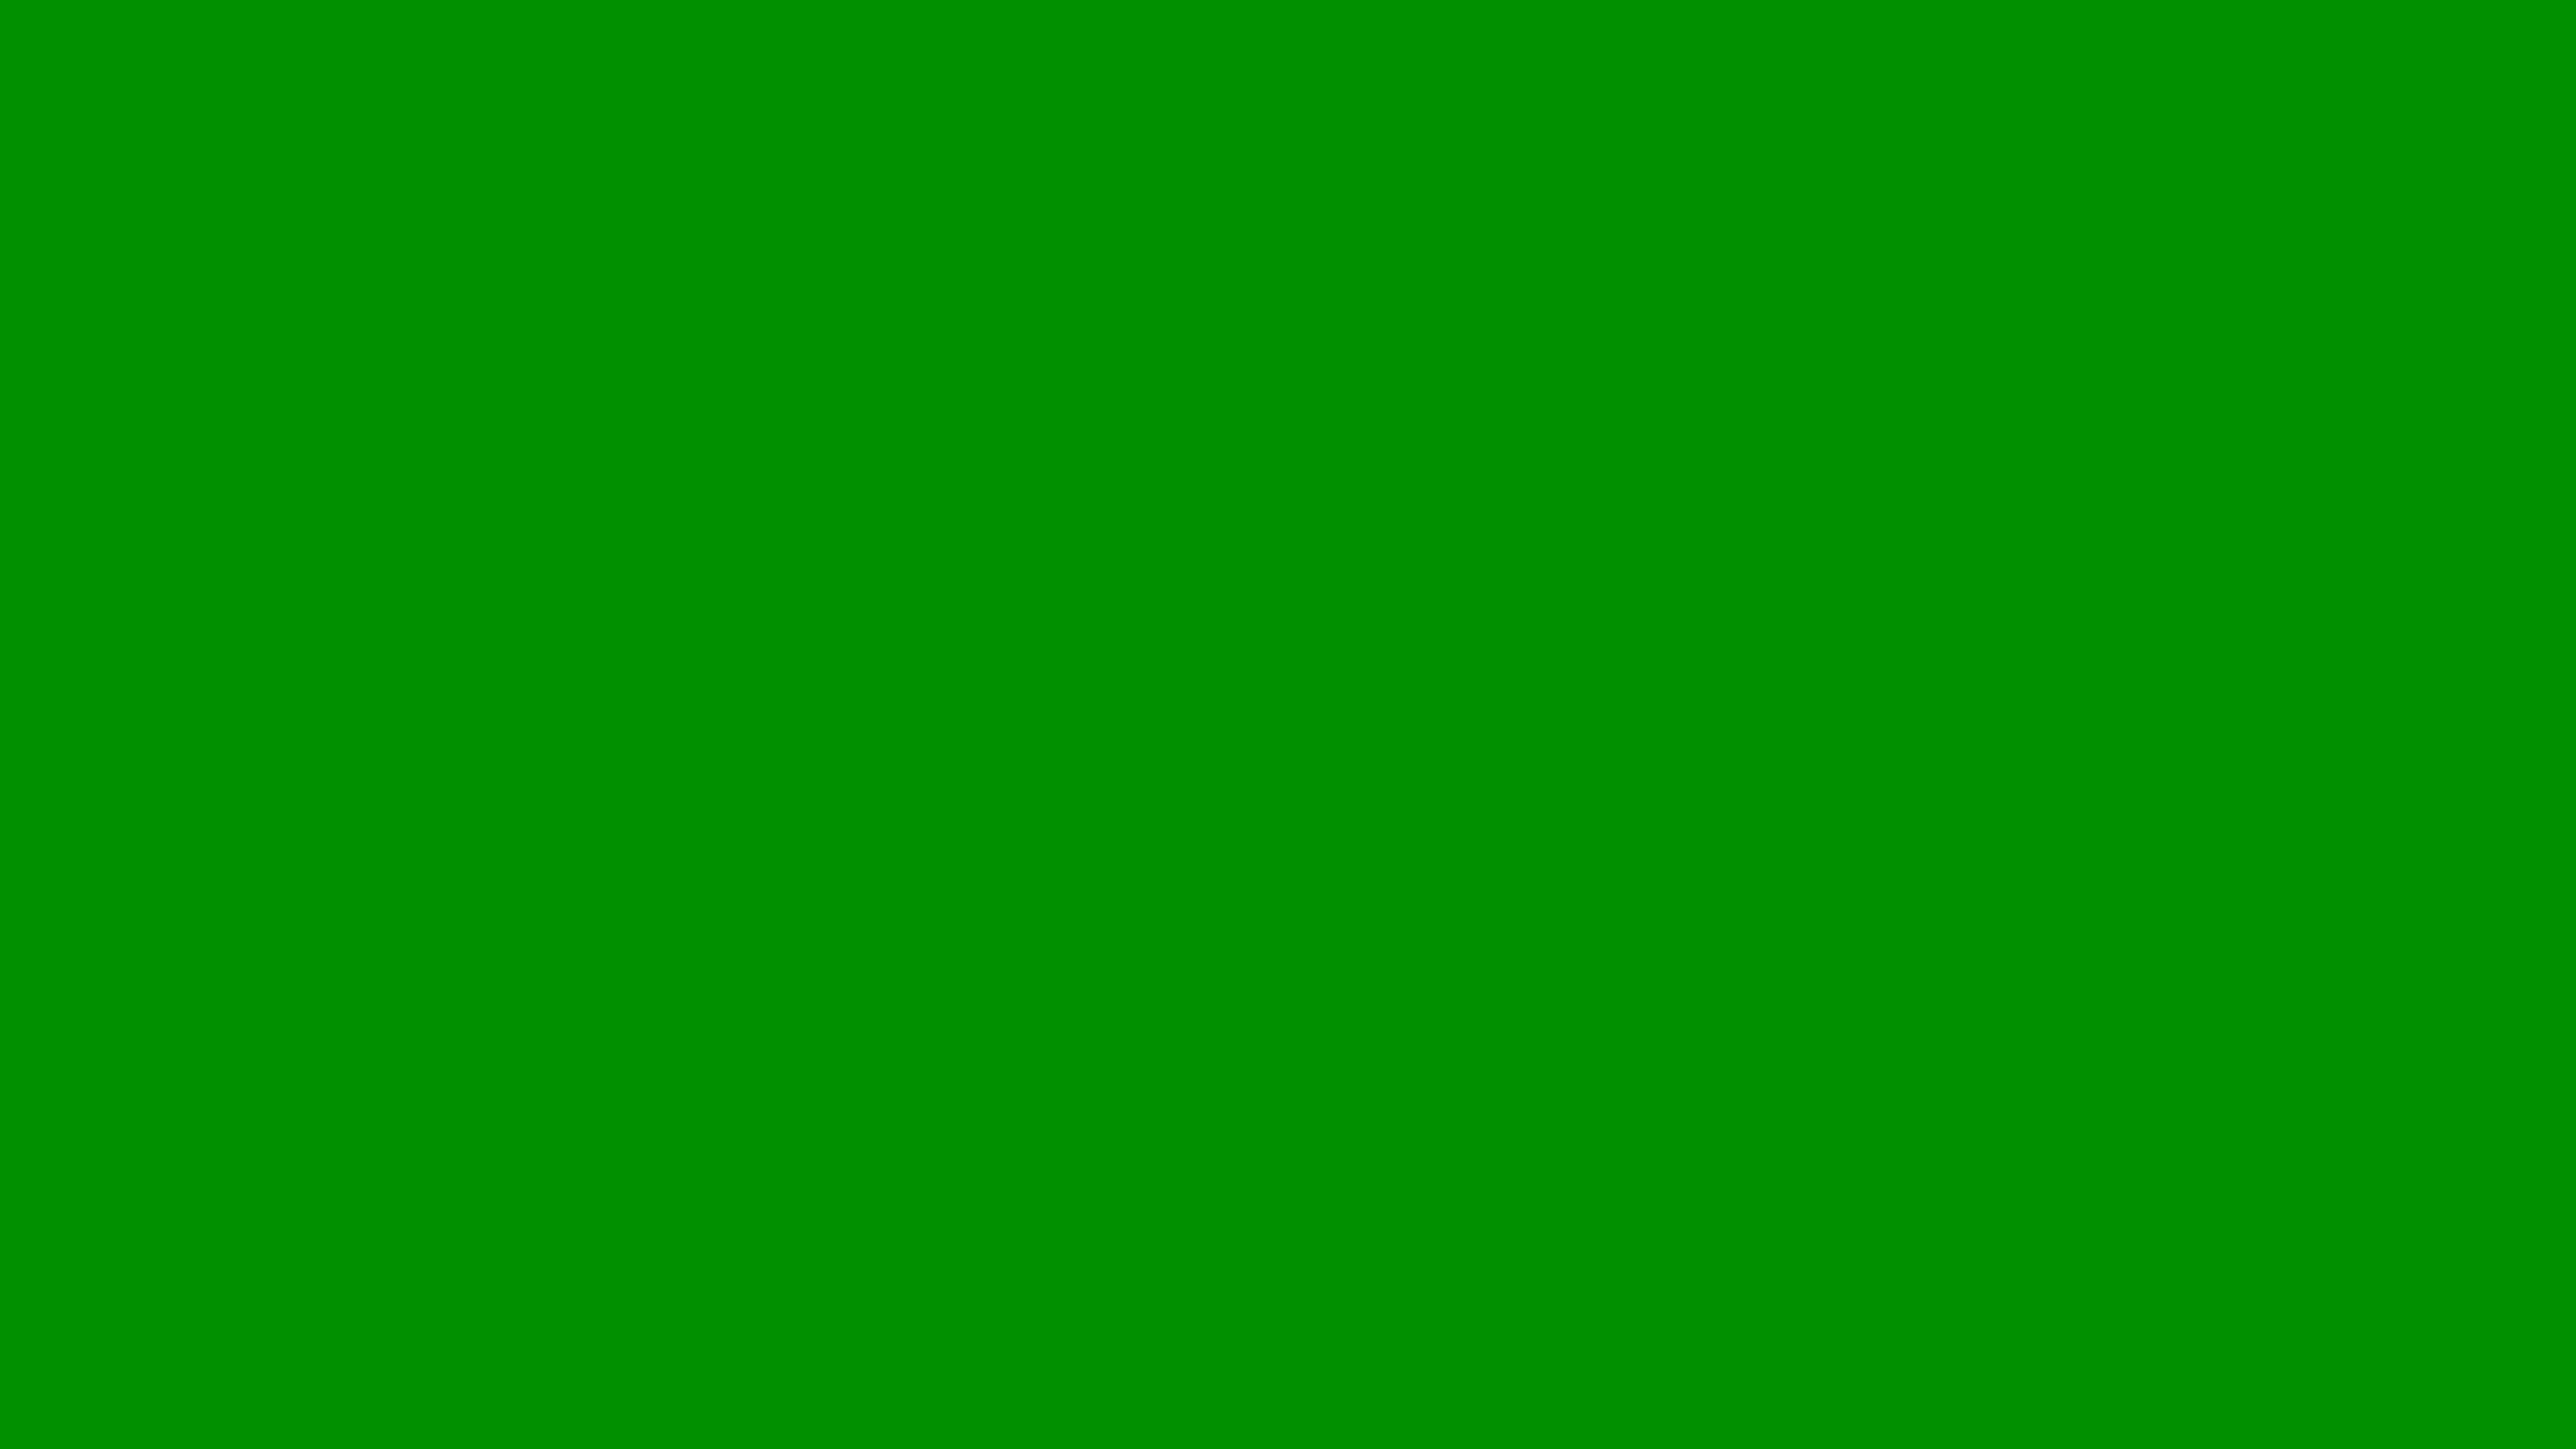 4096x2304 Islamic Green Solid Color Background